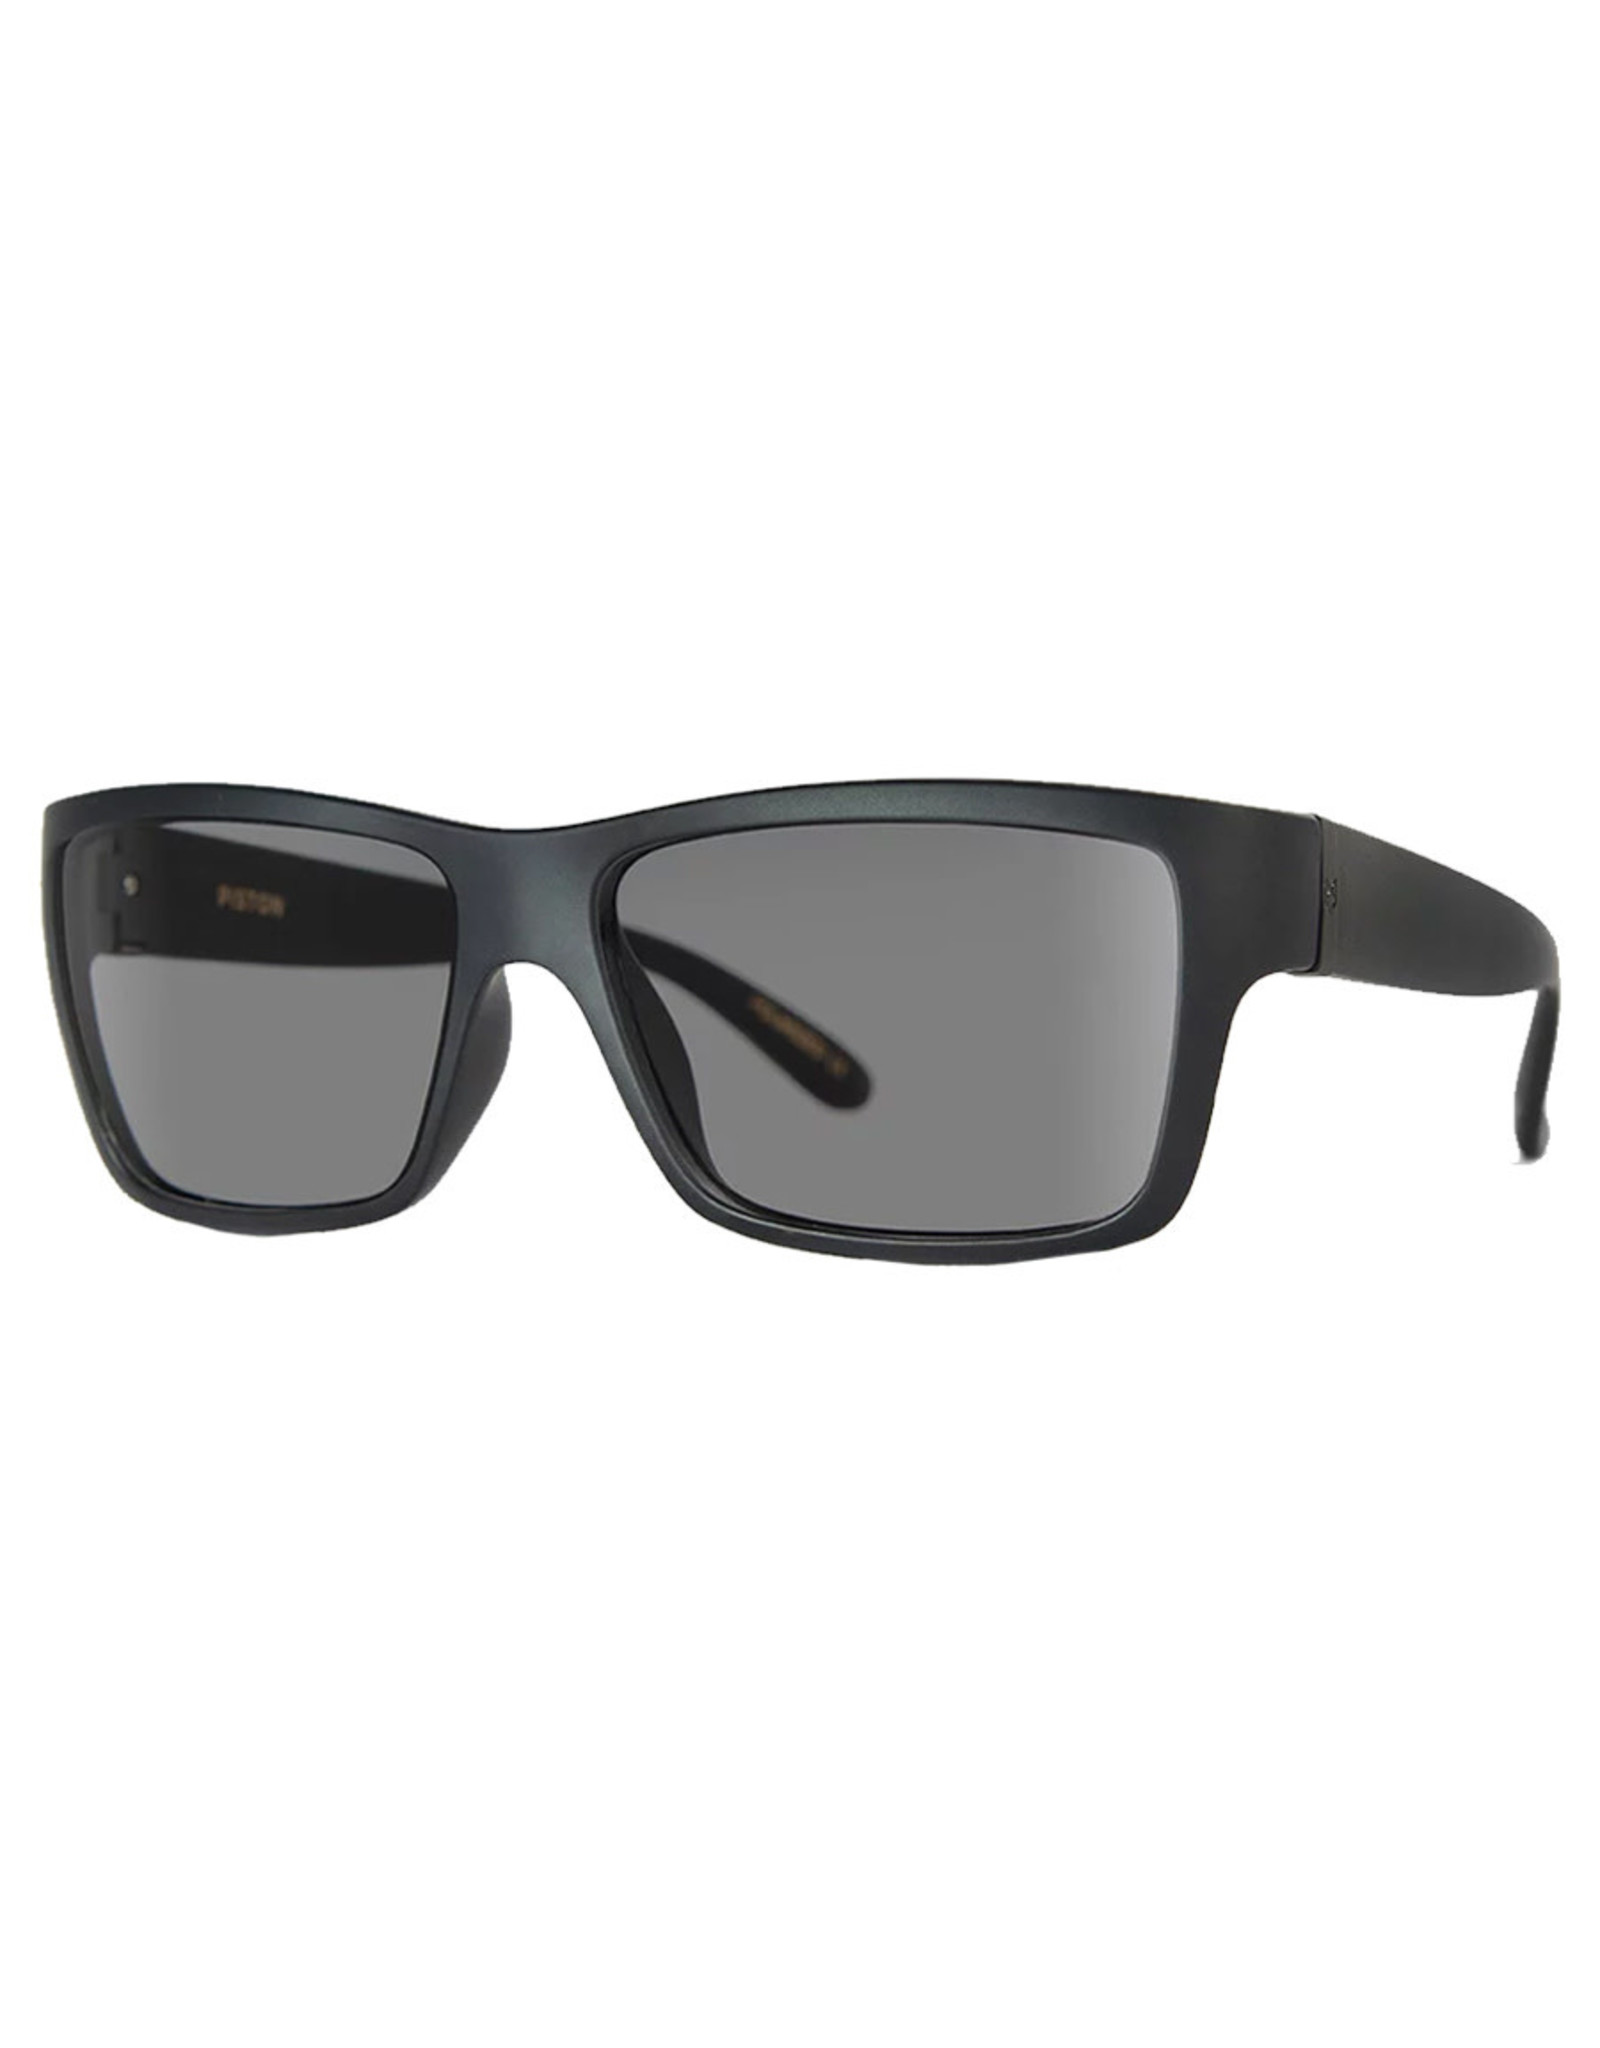 Madson Madson Sunglasses Piston (Black On Black/Grey Polarized Lens)